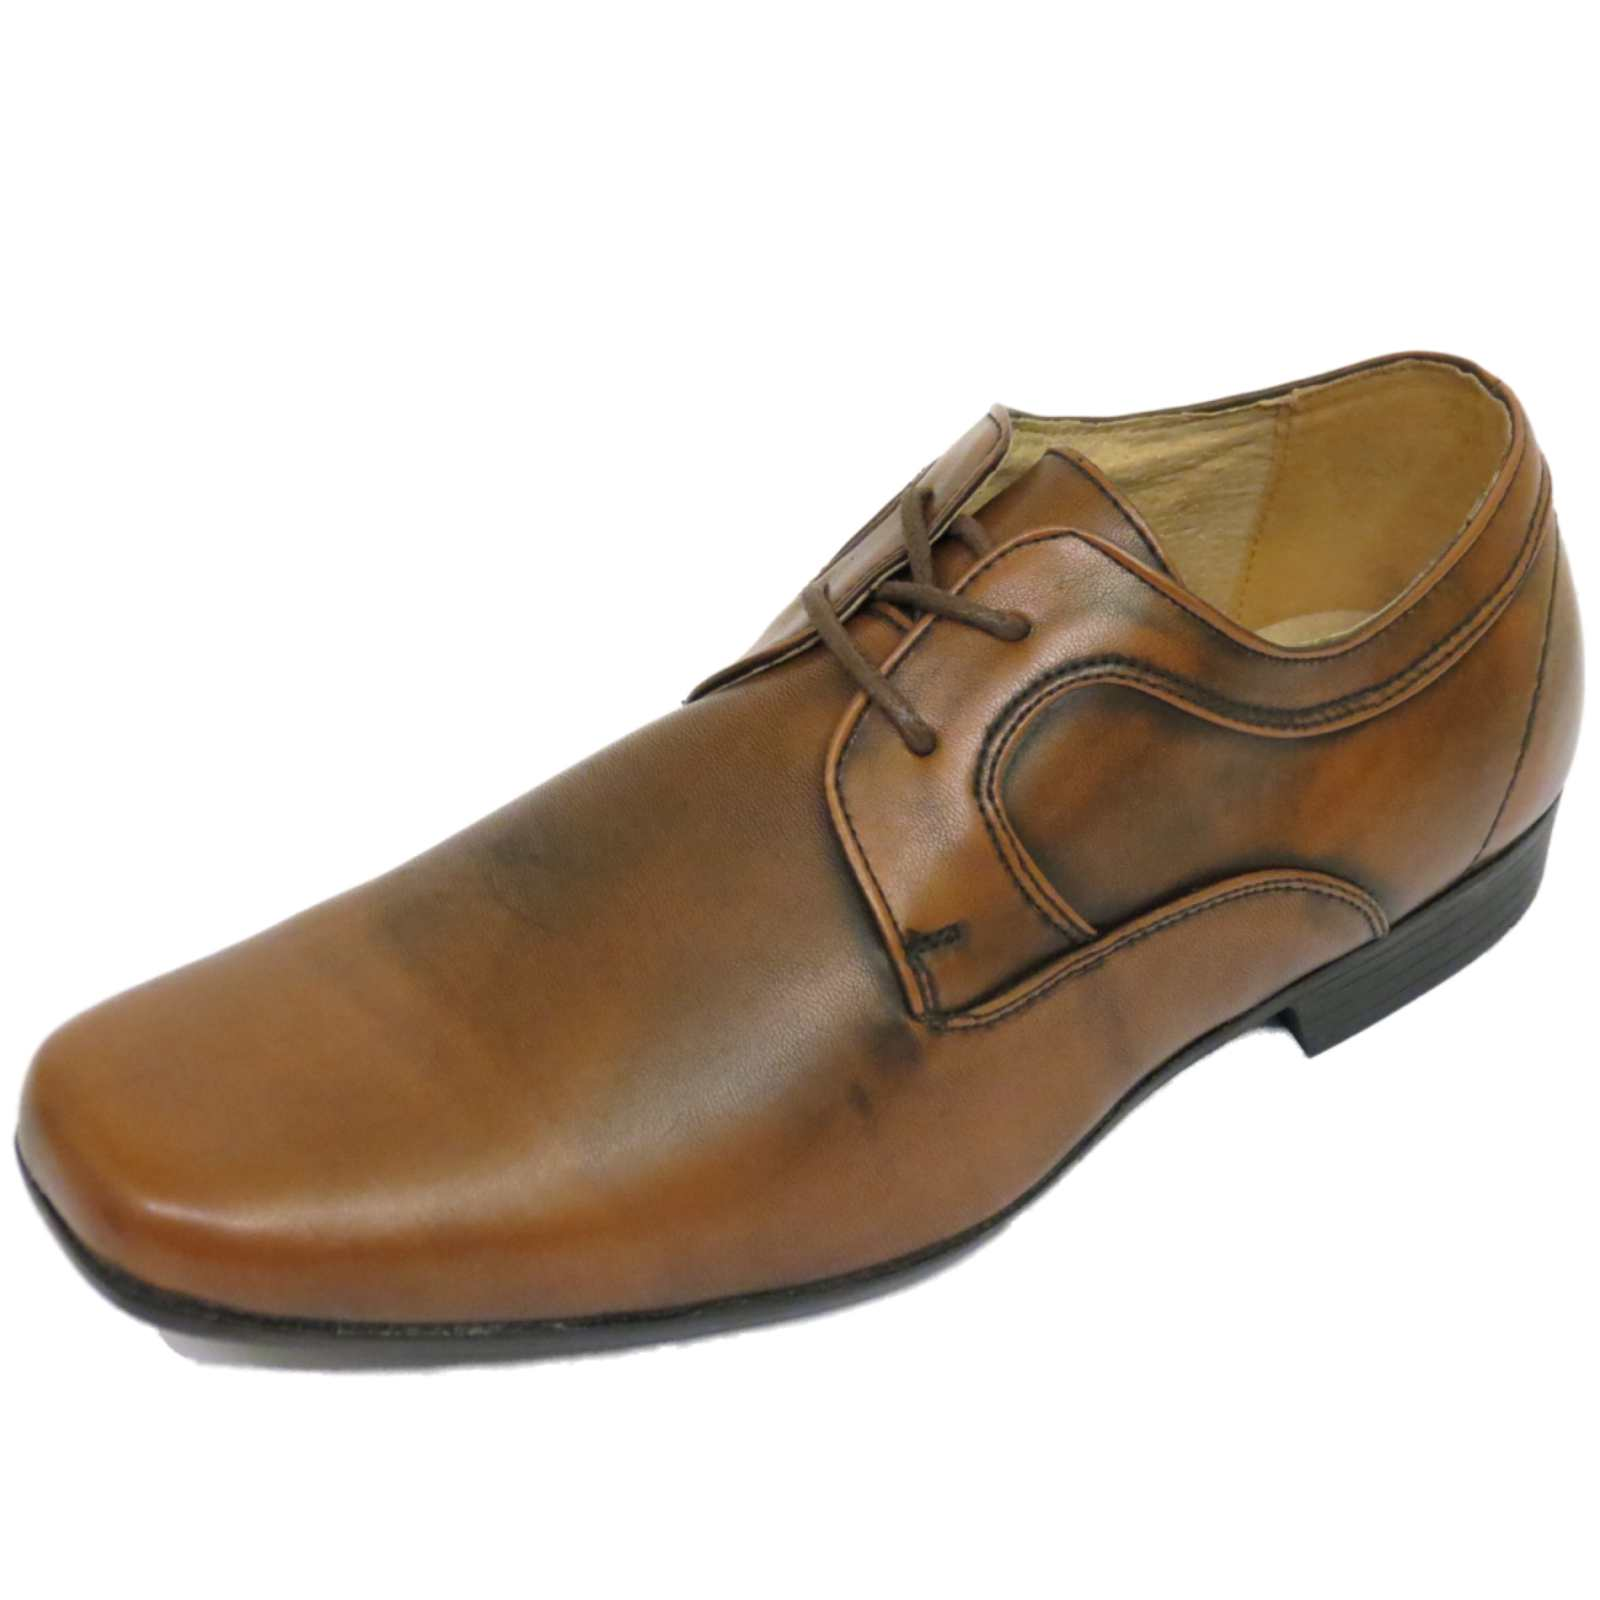 MENS BROWN LACE-UP WORK WEDDING SMART CASUAL LOAFERS WORK SHOES SIZES 7-15 | EBay